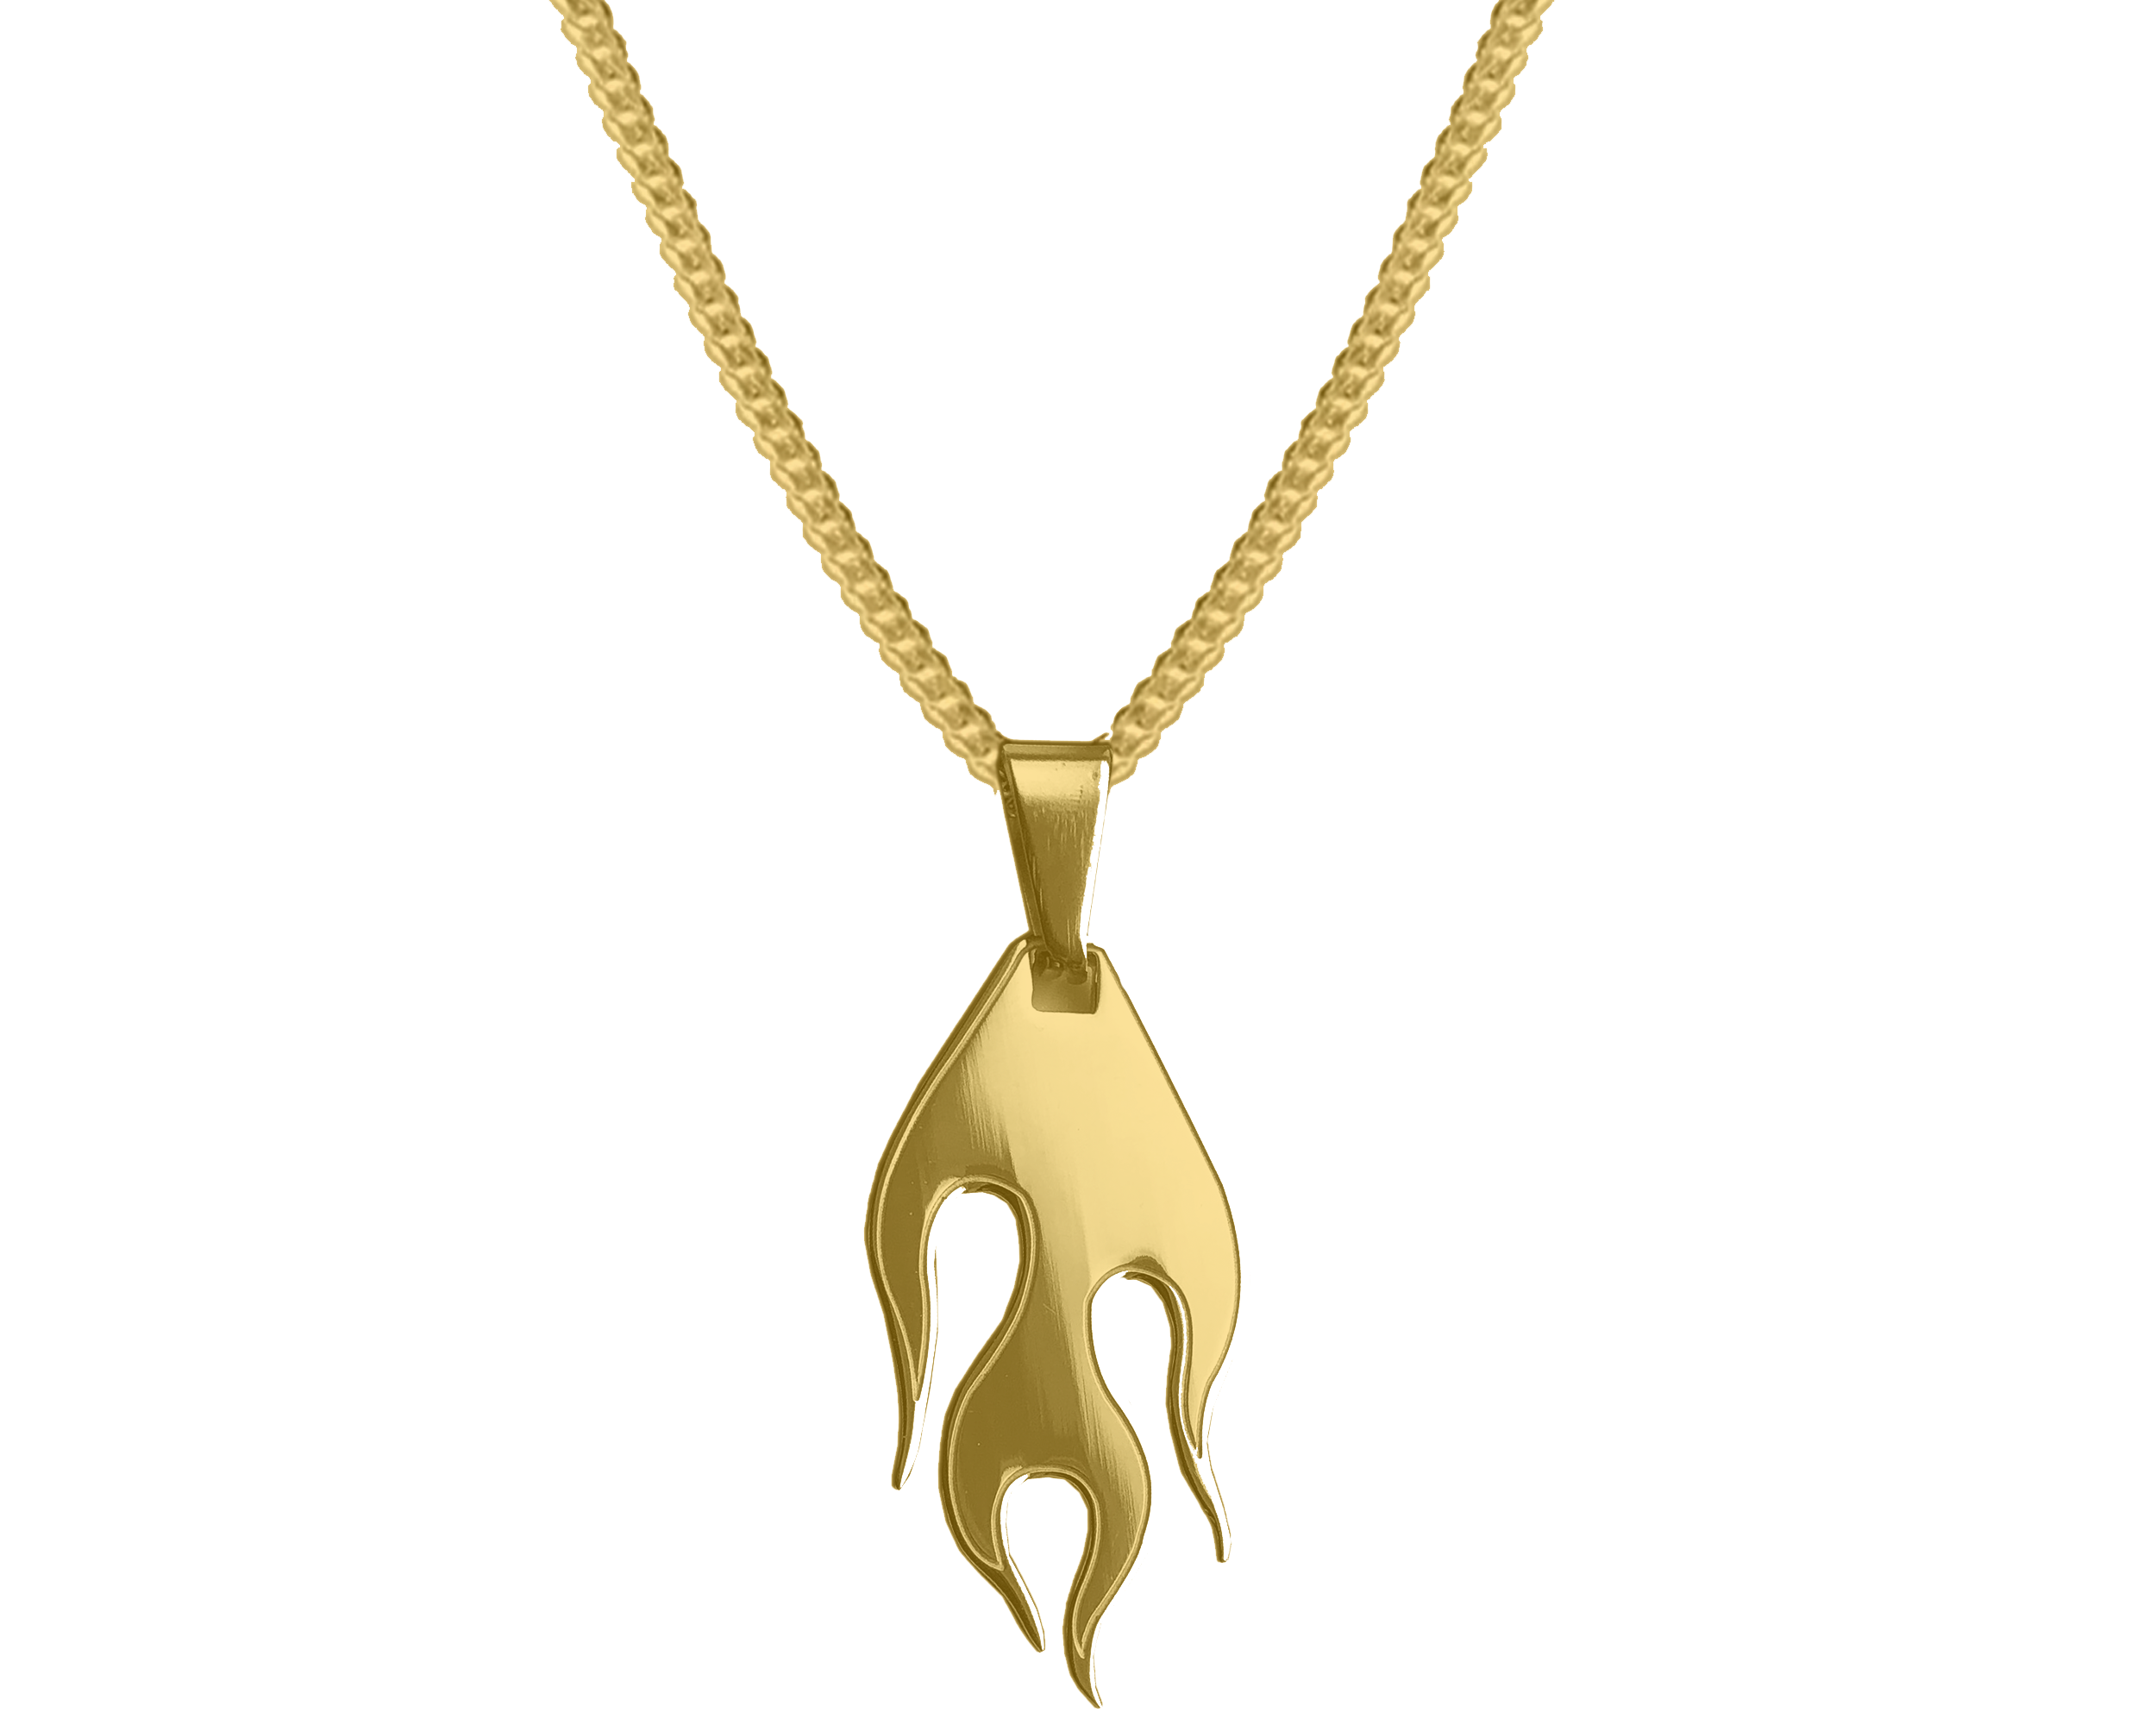 bd0756ead GOLD HOT ROD FLAME PENDANT NECKLACE – ONE15